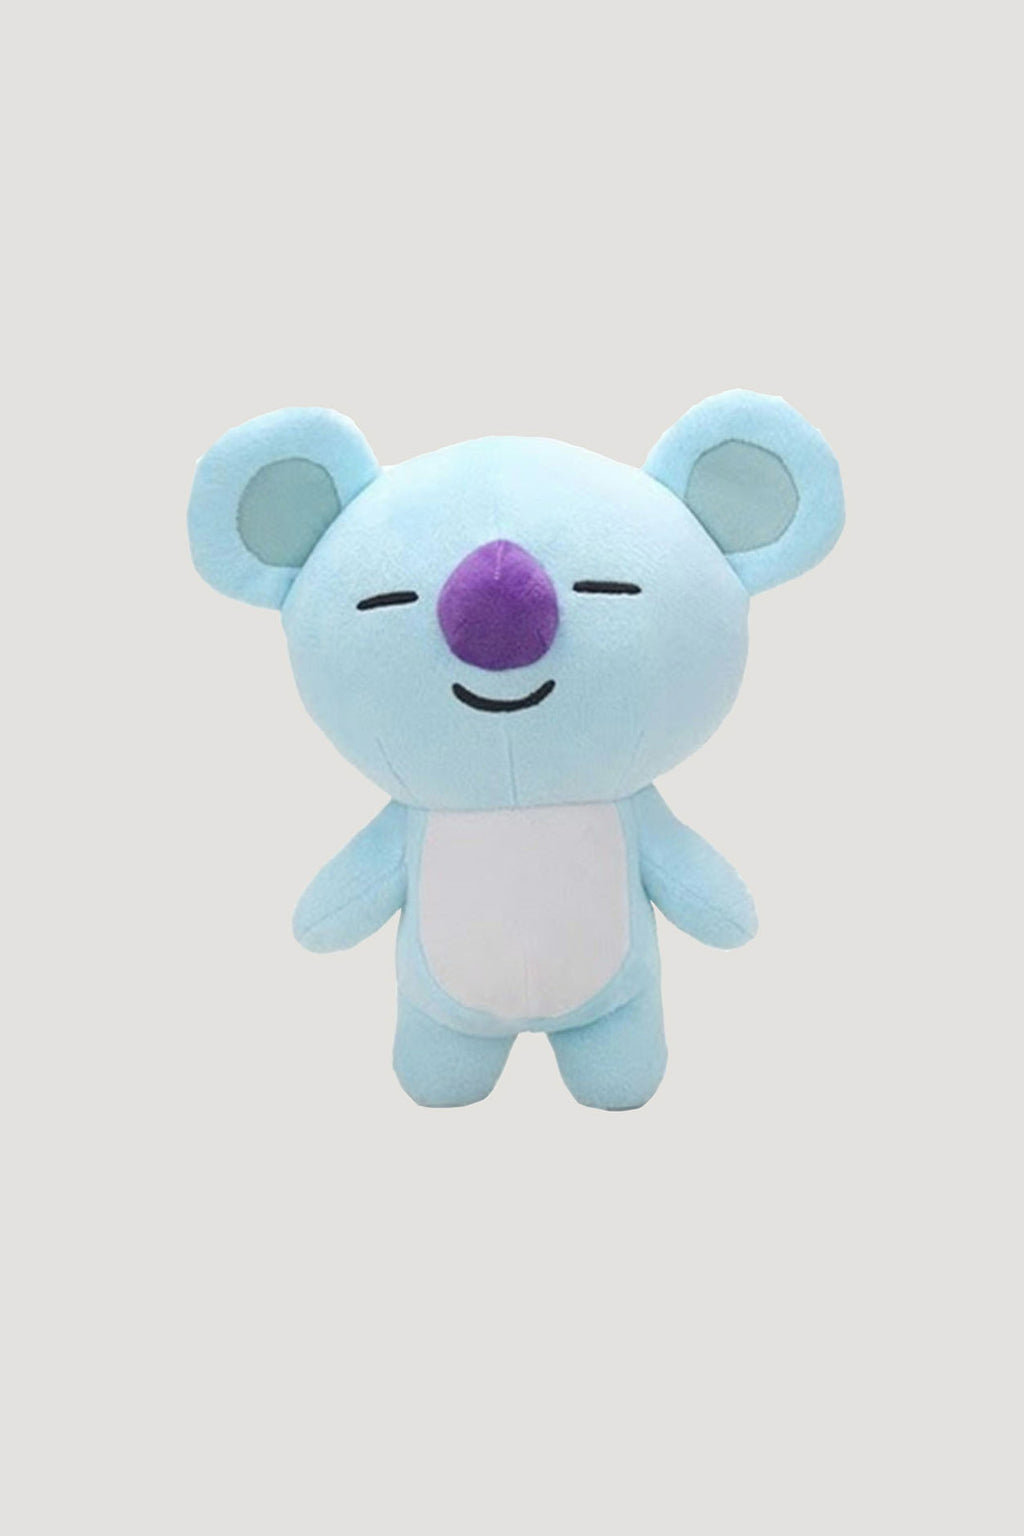 K-POP BTS BT21 Koya Rap Monster Plush